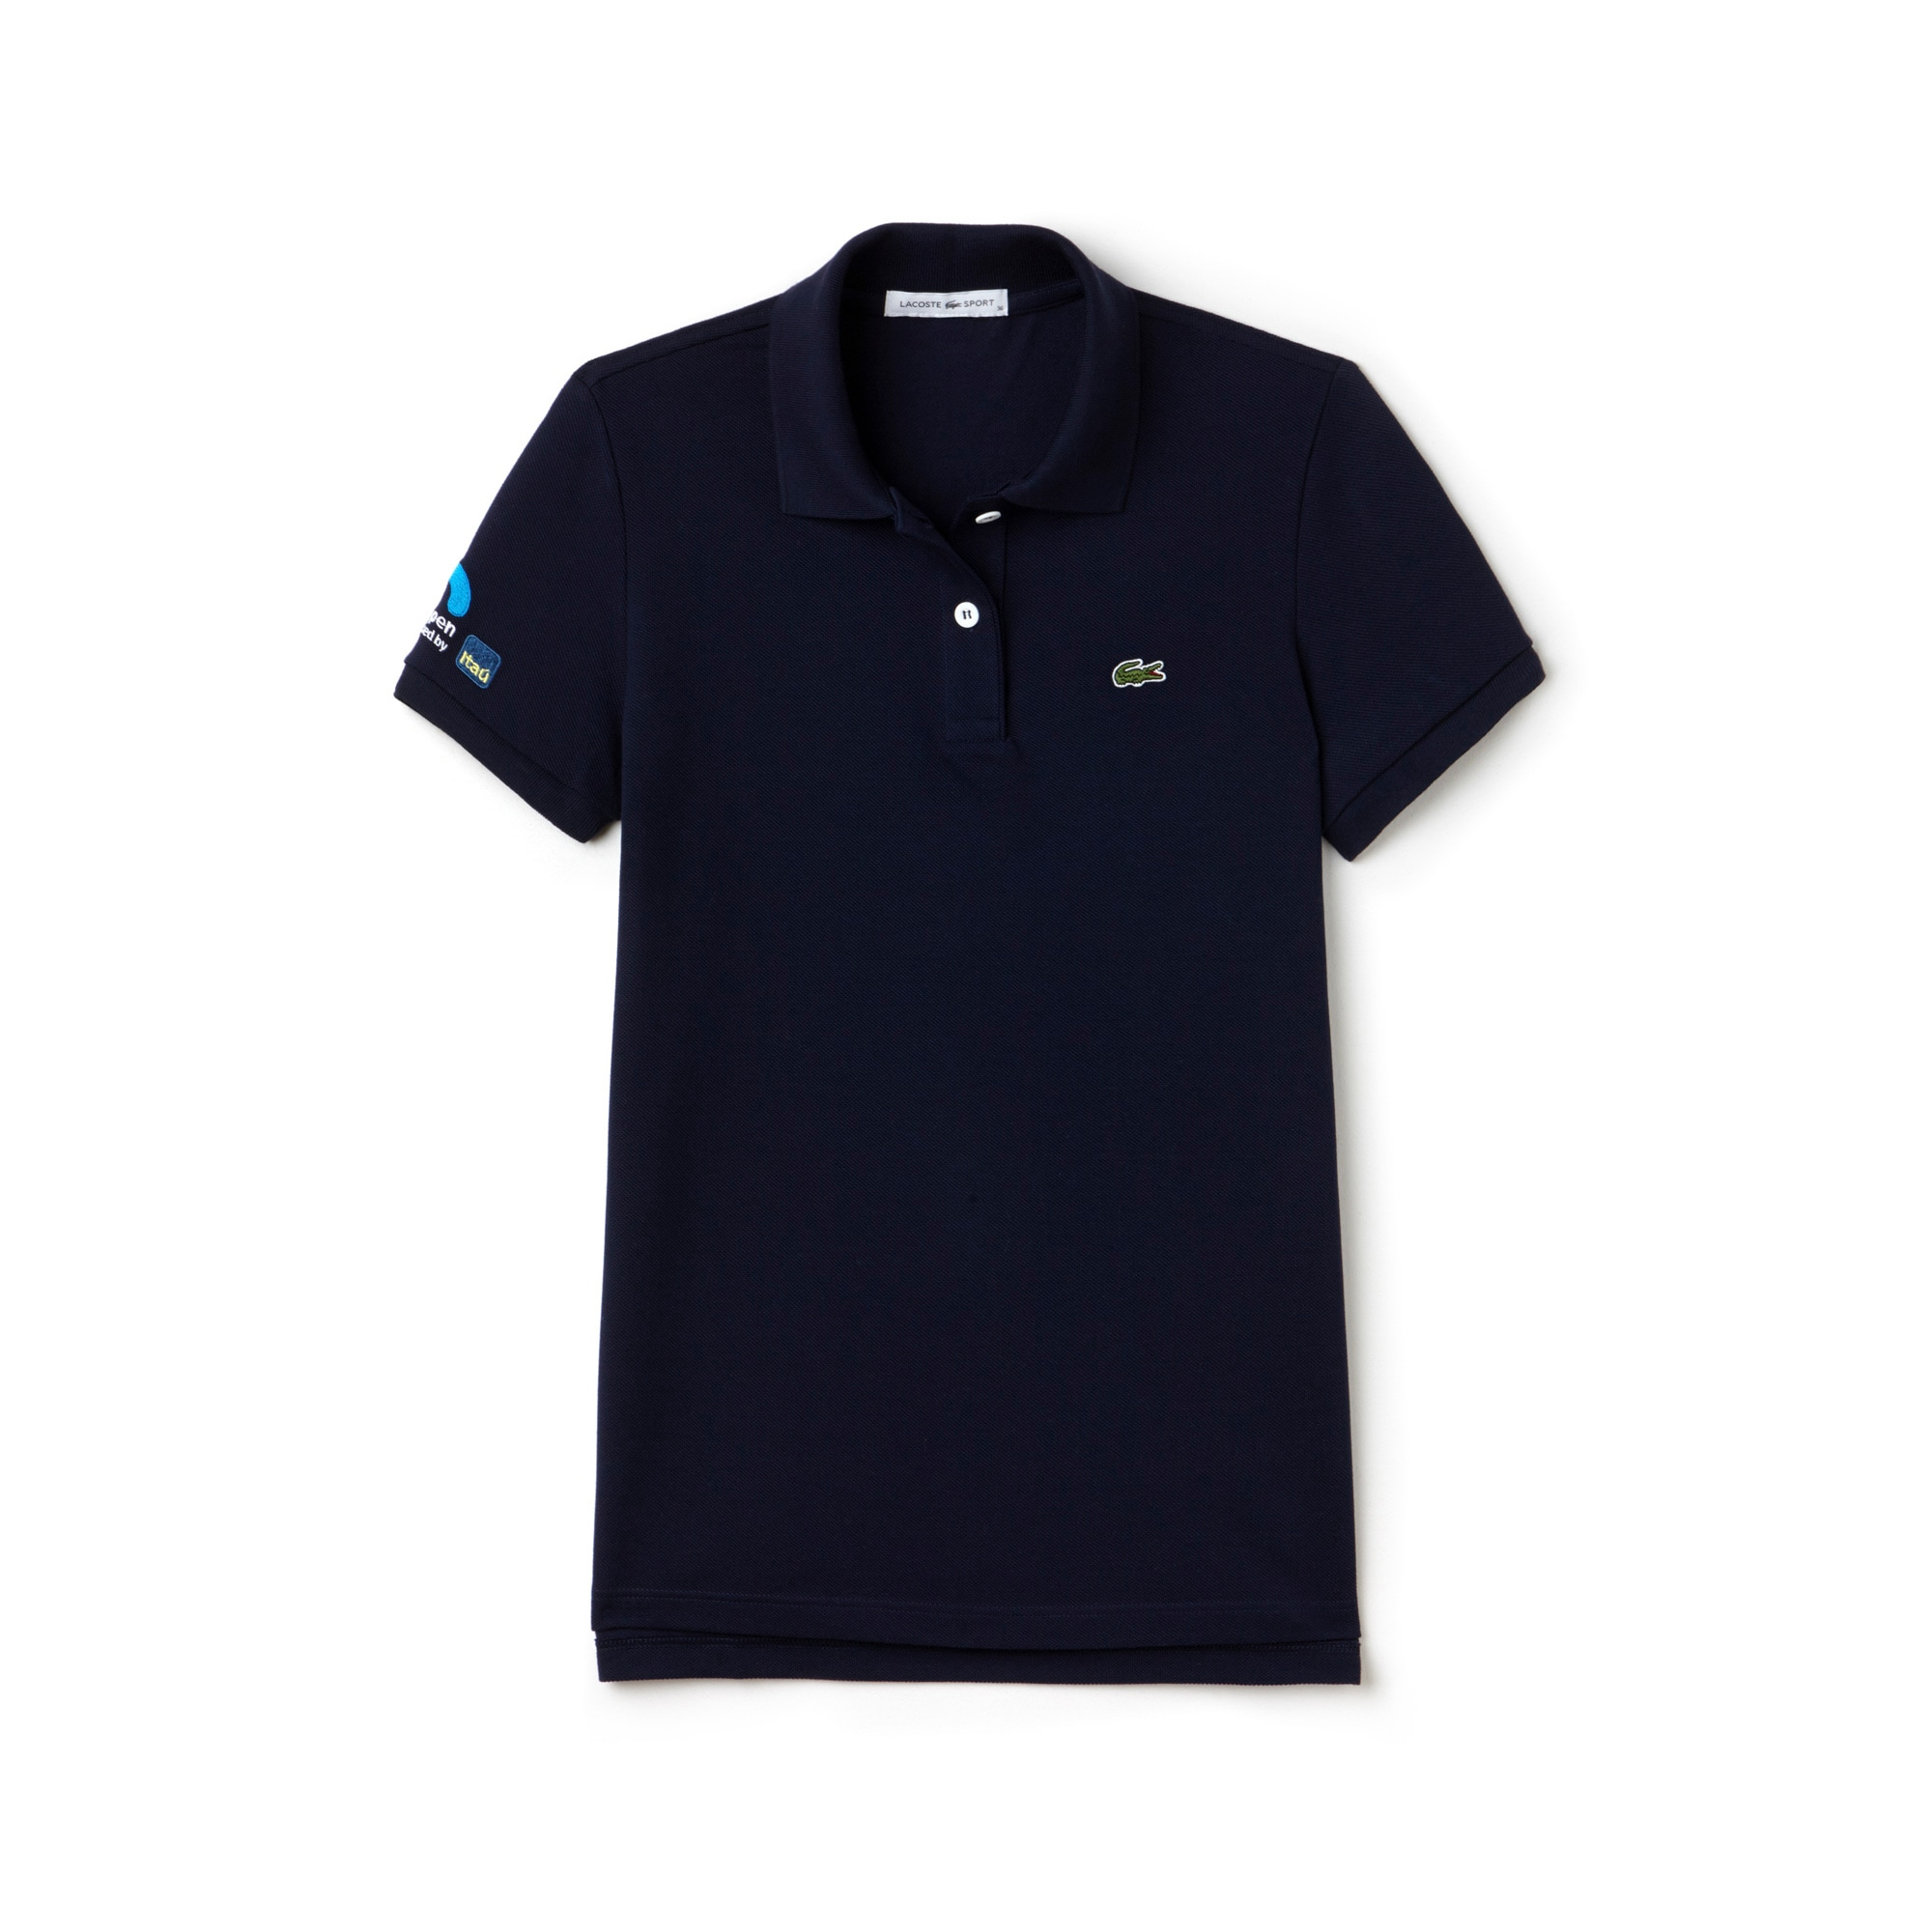 Women's SPORT Miami Open Petit Piqué Tennis Polo